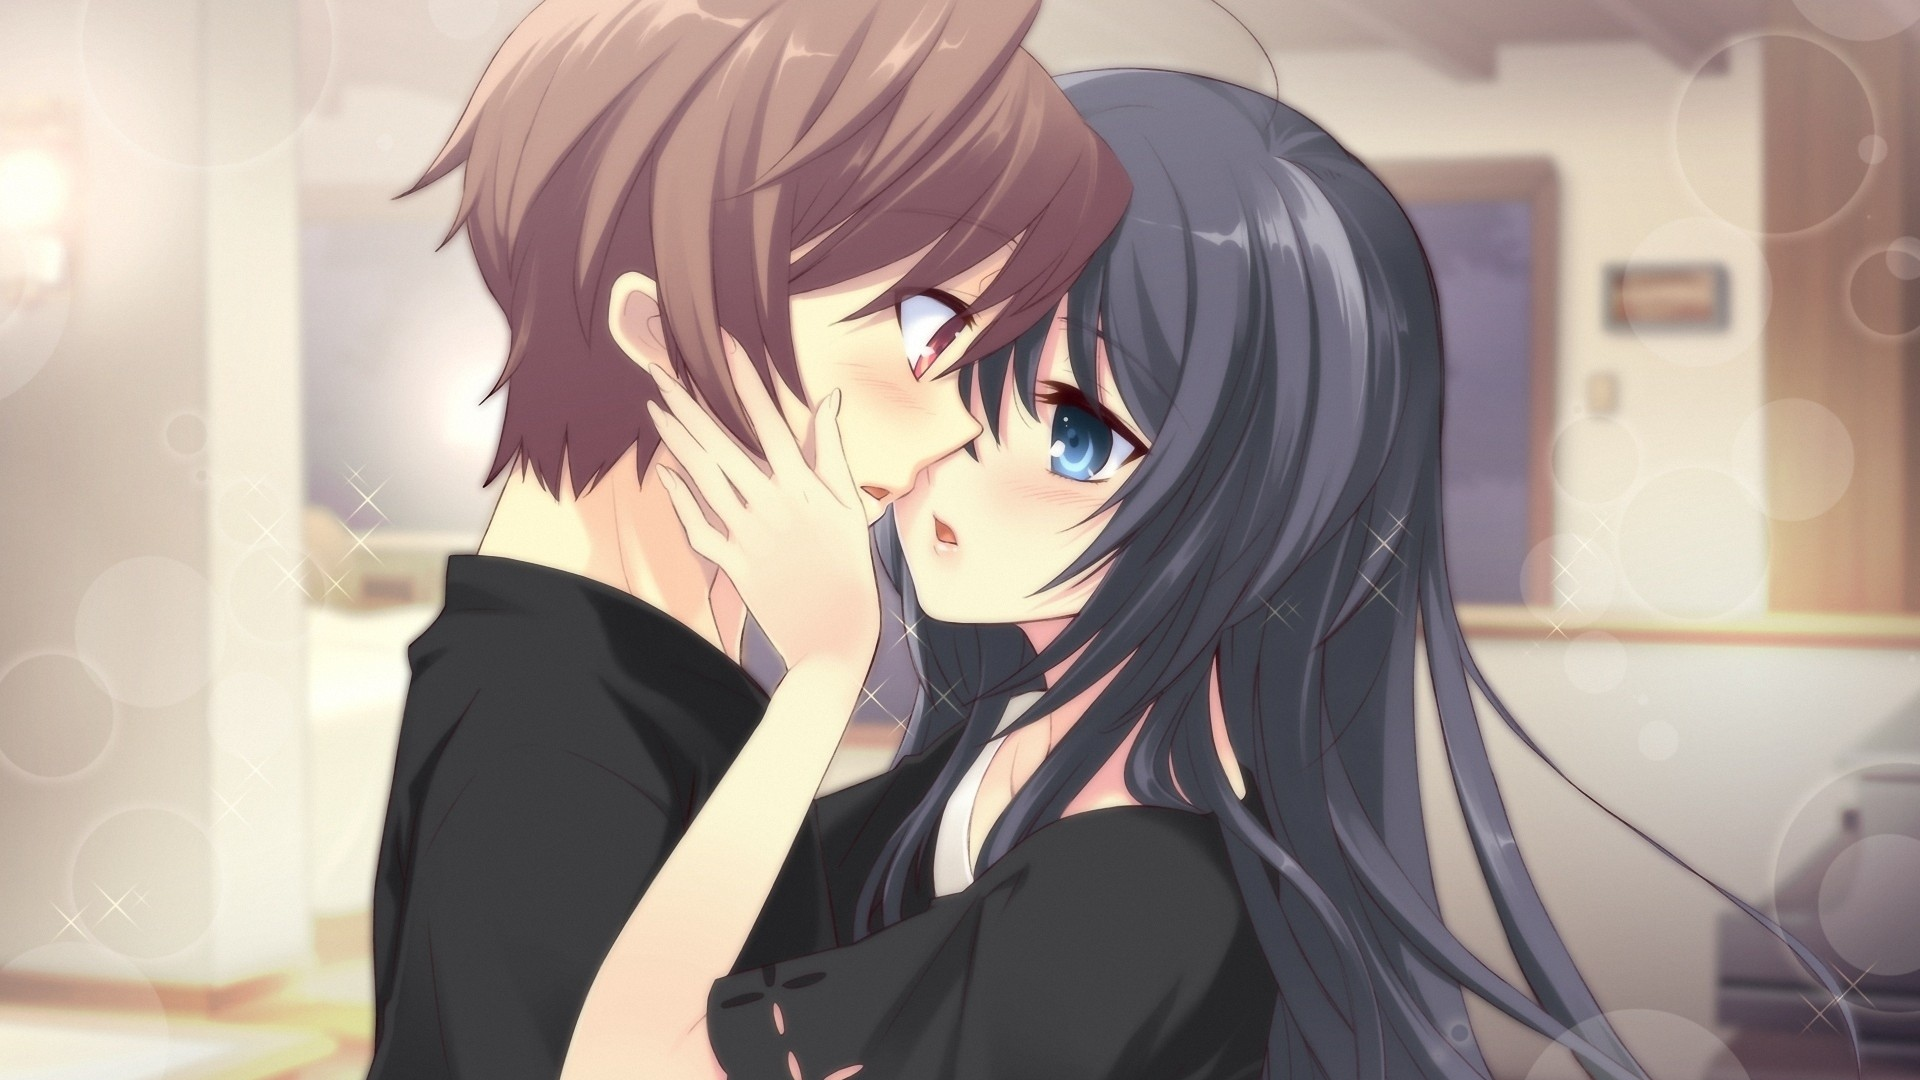 Cute-Anime-Couple-Kiss-1920x1080-Need-iPhone-S-Plus-Background-for-IPh-wallpaper-wp3404303